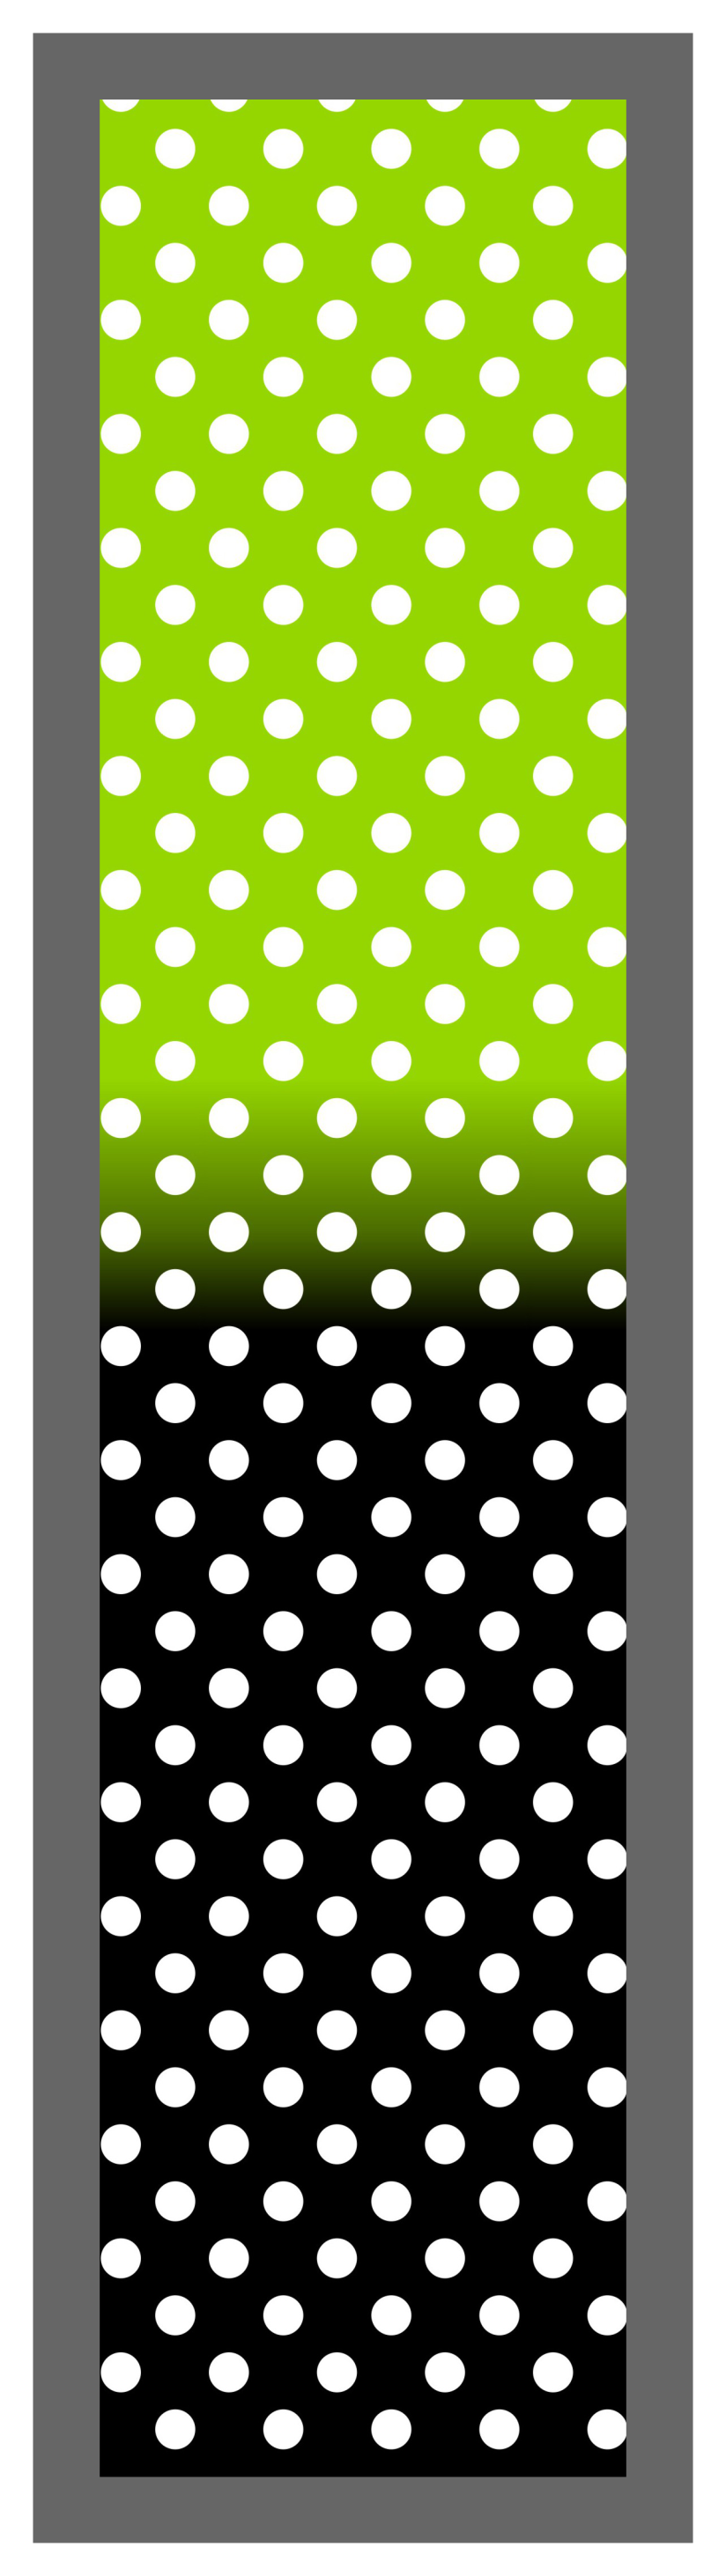 Lime Green-Black Ombre Polka Dots